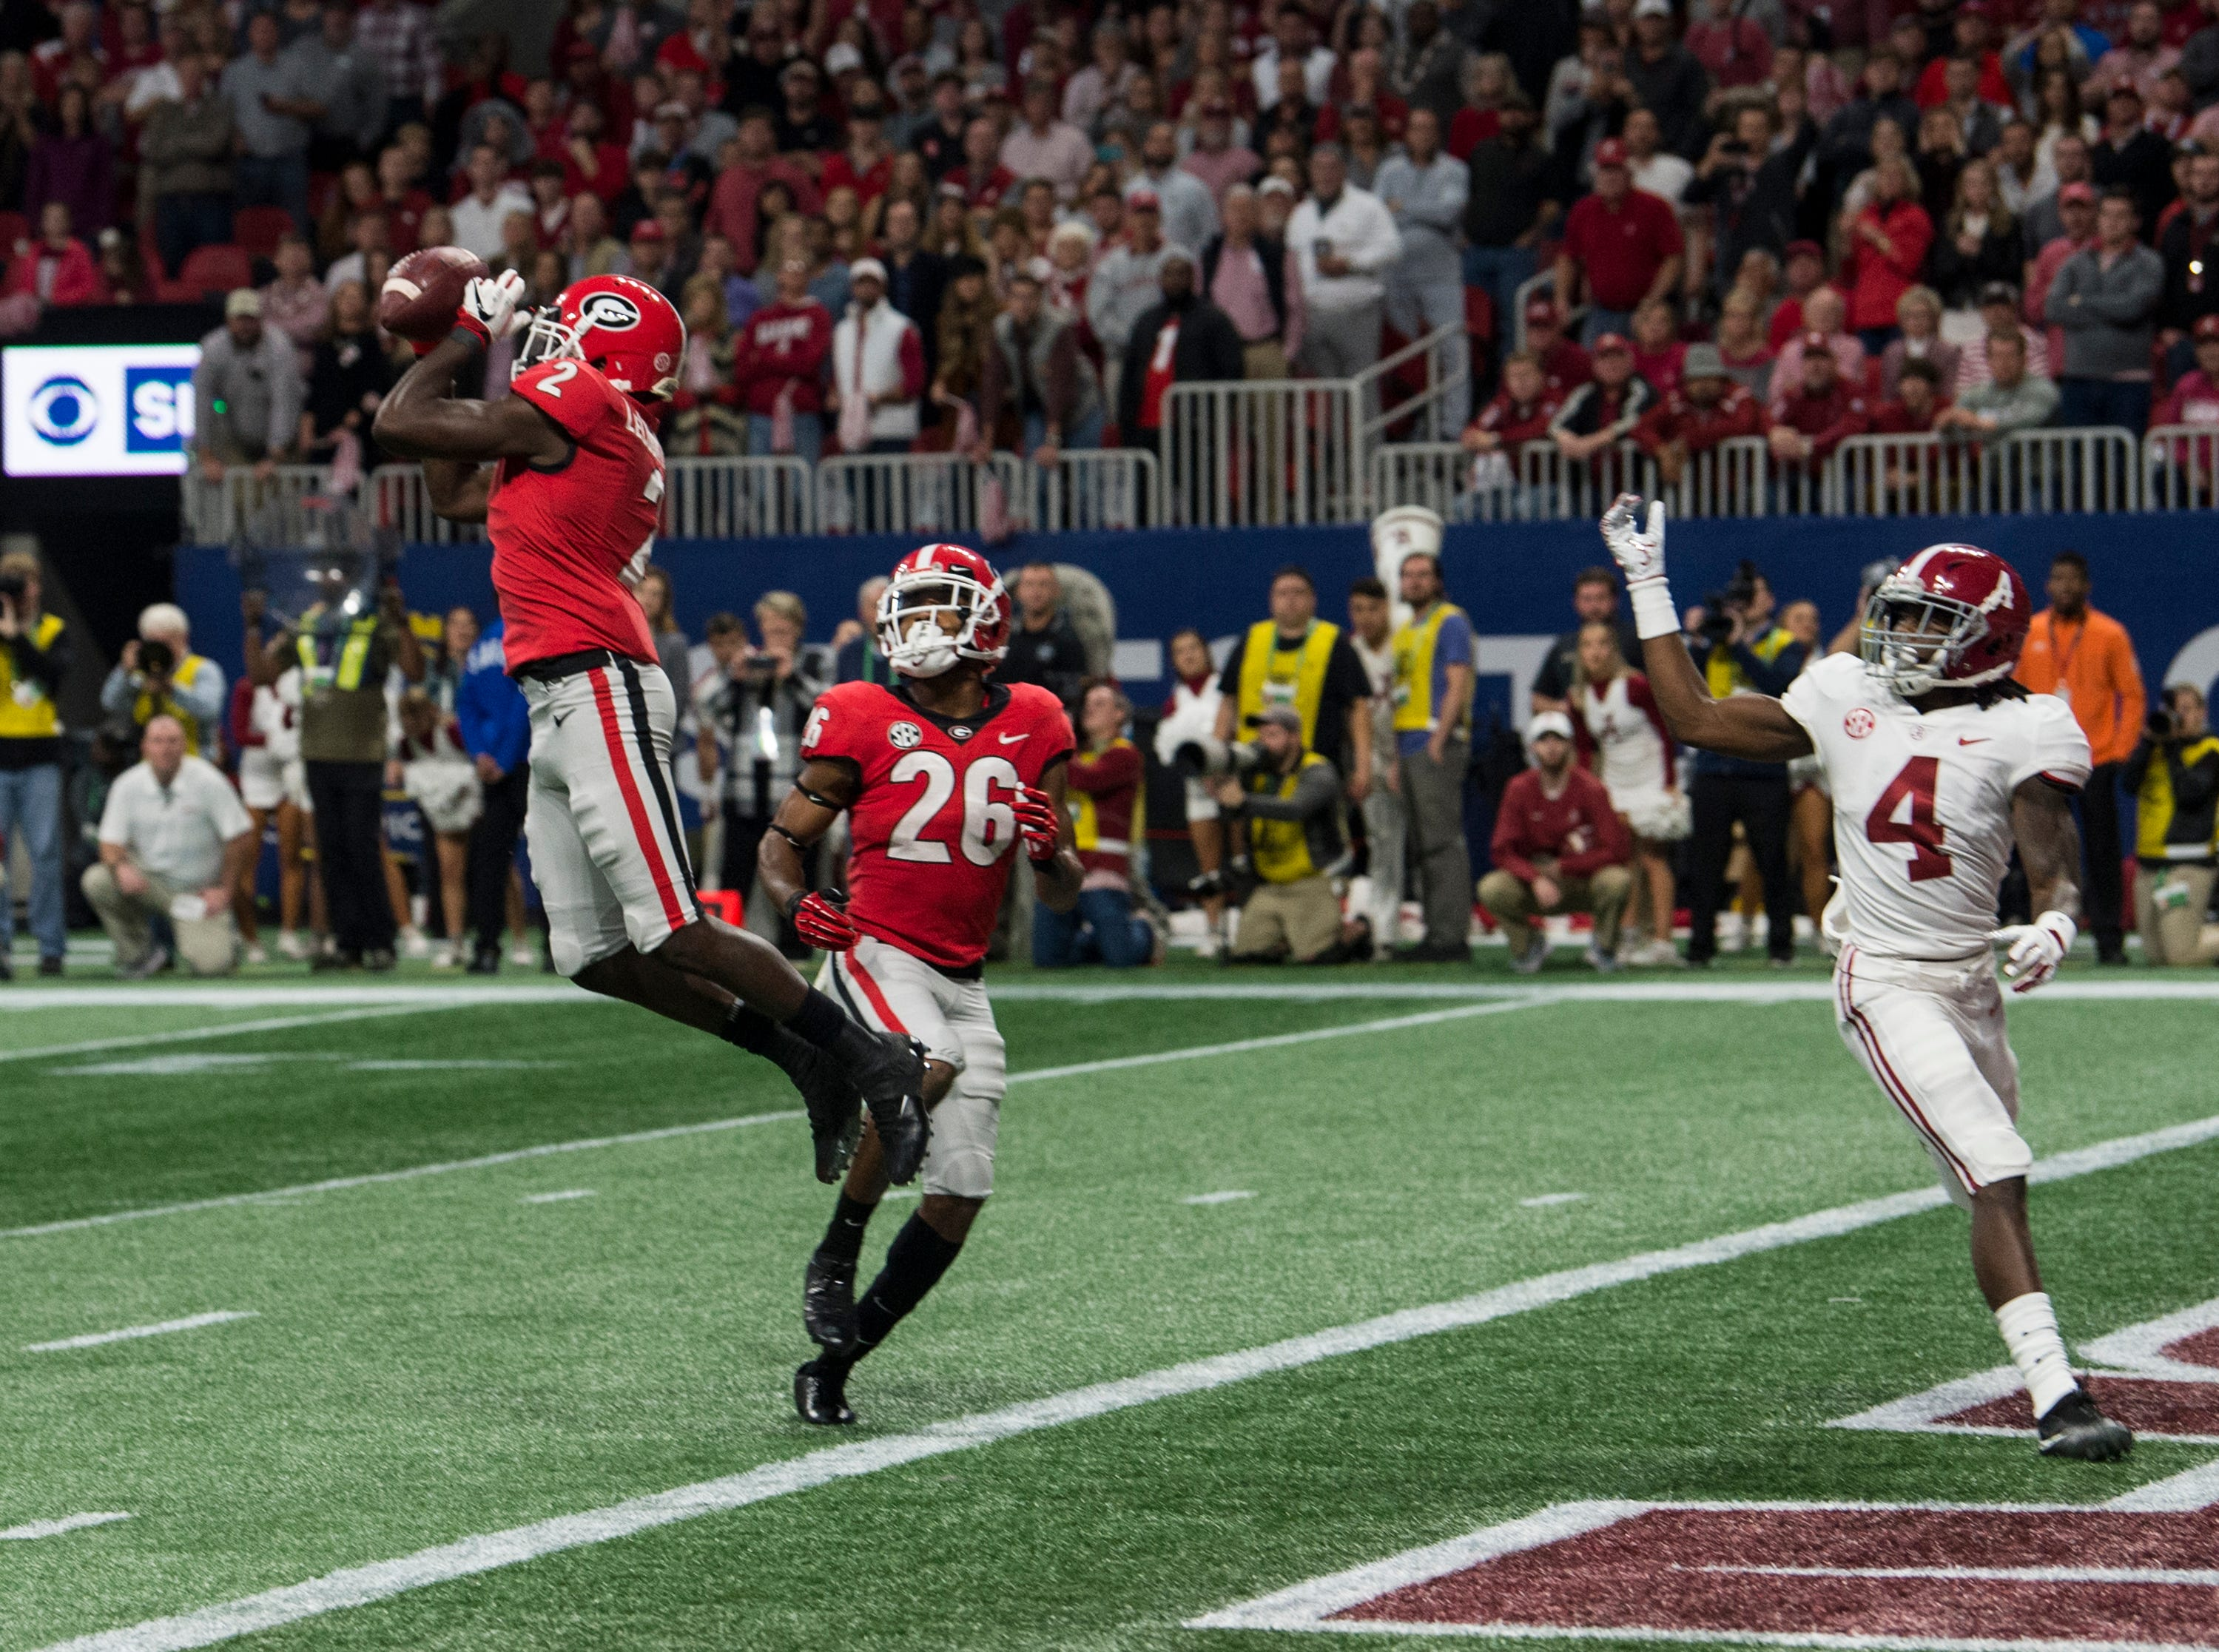 Georgia defensive back Richard LeCounte (2) intercepts a pass on the goal line during the SEC Championship game at Mercedes-Benz Stadium in Atlanta, Ga., on Saturday Dec. 1, 2018. Georgia leads Alabama 21-14 at halftime.